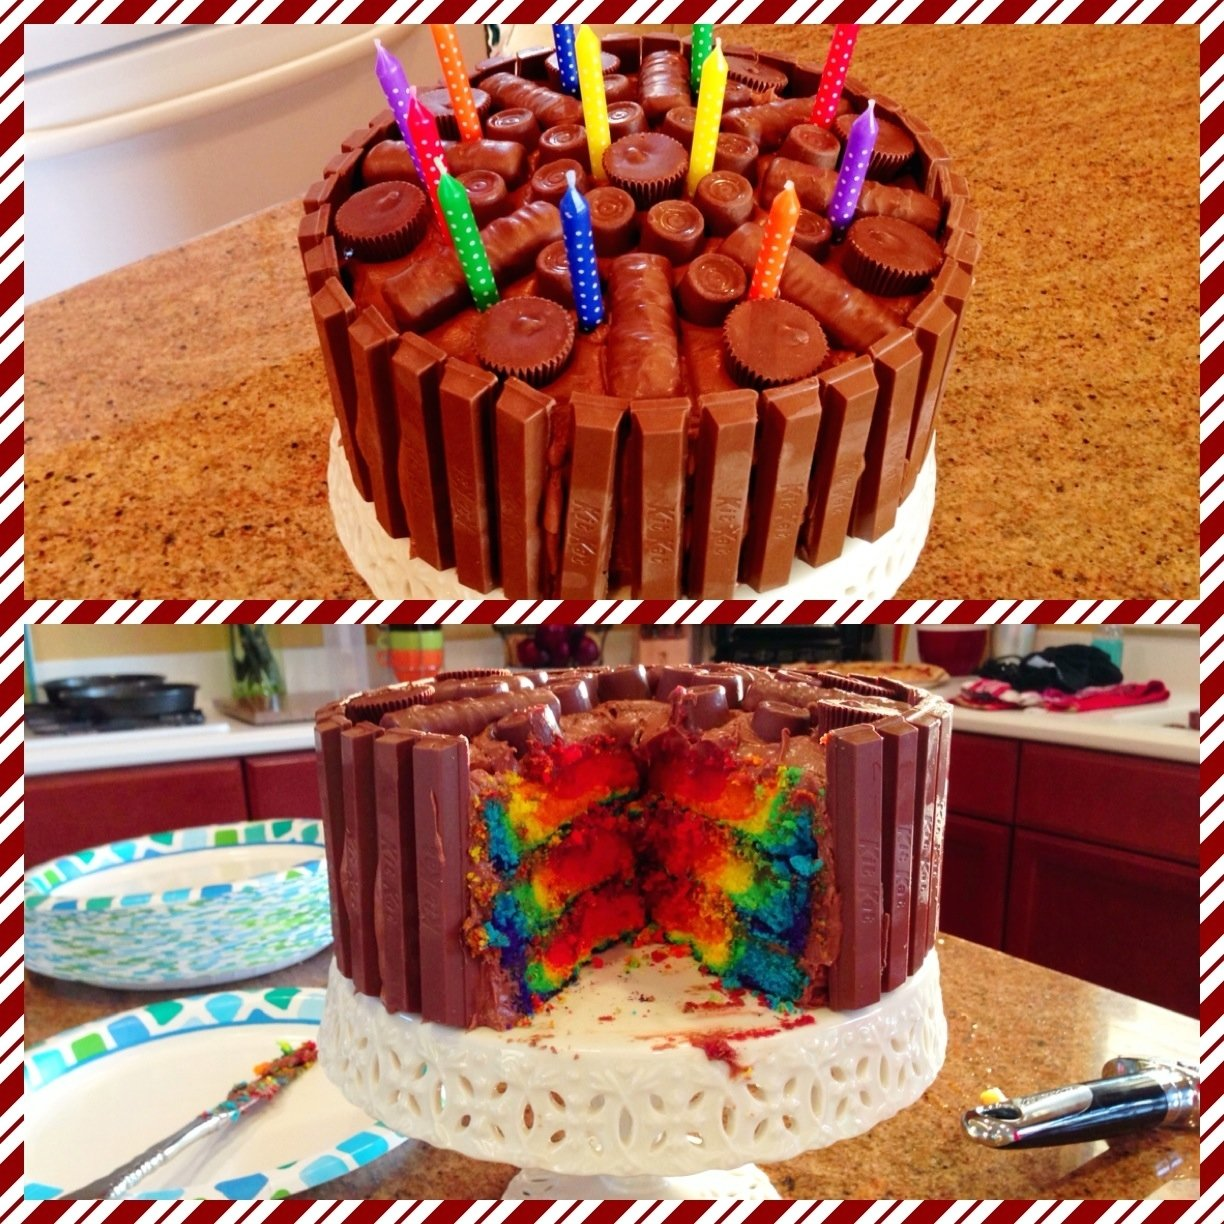 10 Beautiful Birthday Ideas For 12 Year Olds birthday cake for my 12 year old thank you pintrest for the great 1